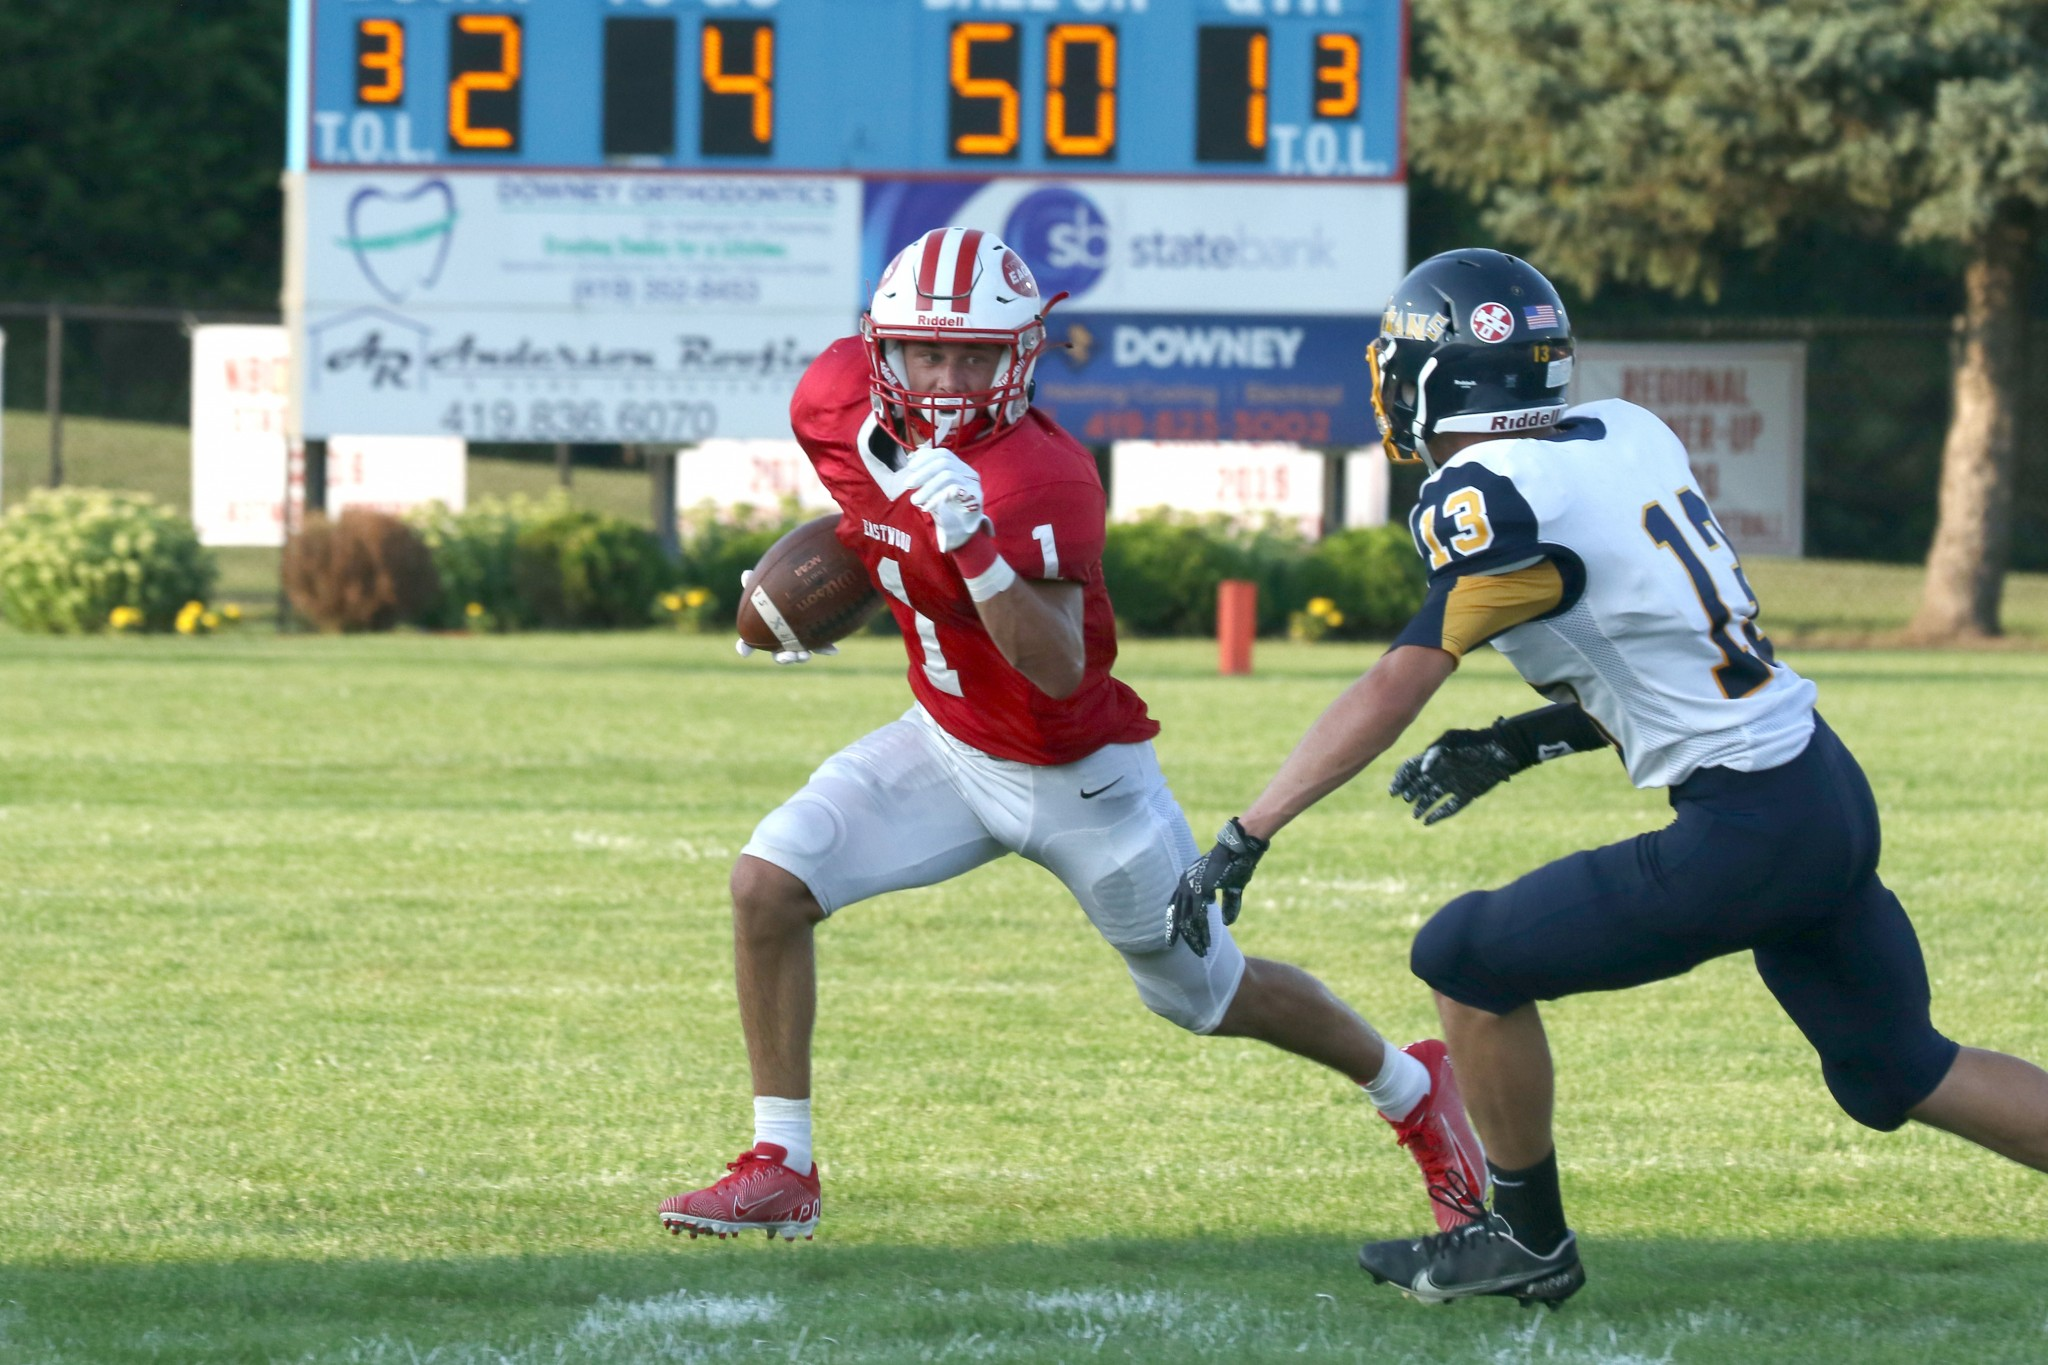 """Eastwood junior back Case Boos puts a move on an Ottawa-Glandorf defender as the Eagles put up 42 points. (Press photo by Lee Welch/<a href=""""http://www.FamilyPhotoGroup.com"""">www.FamilyPhotoGroup.com</a>)"""